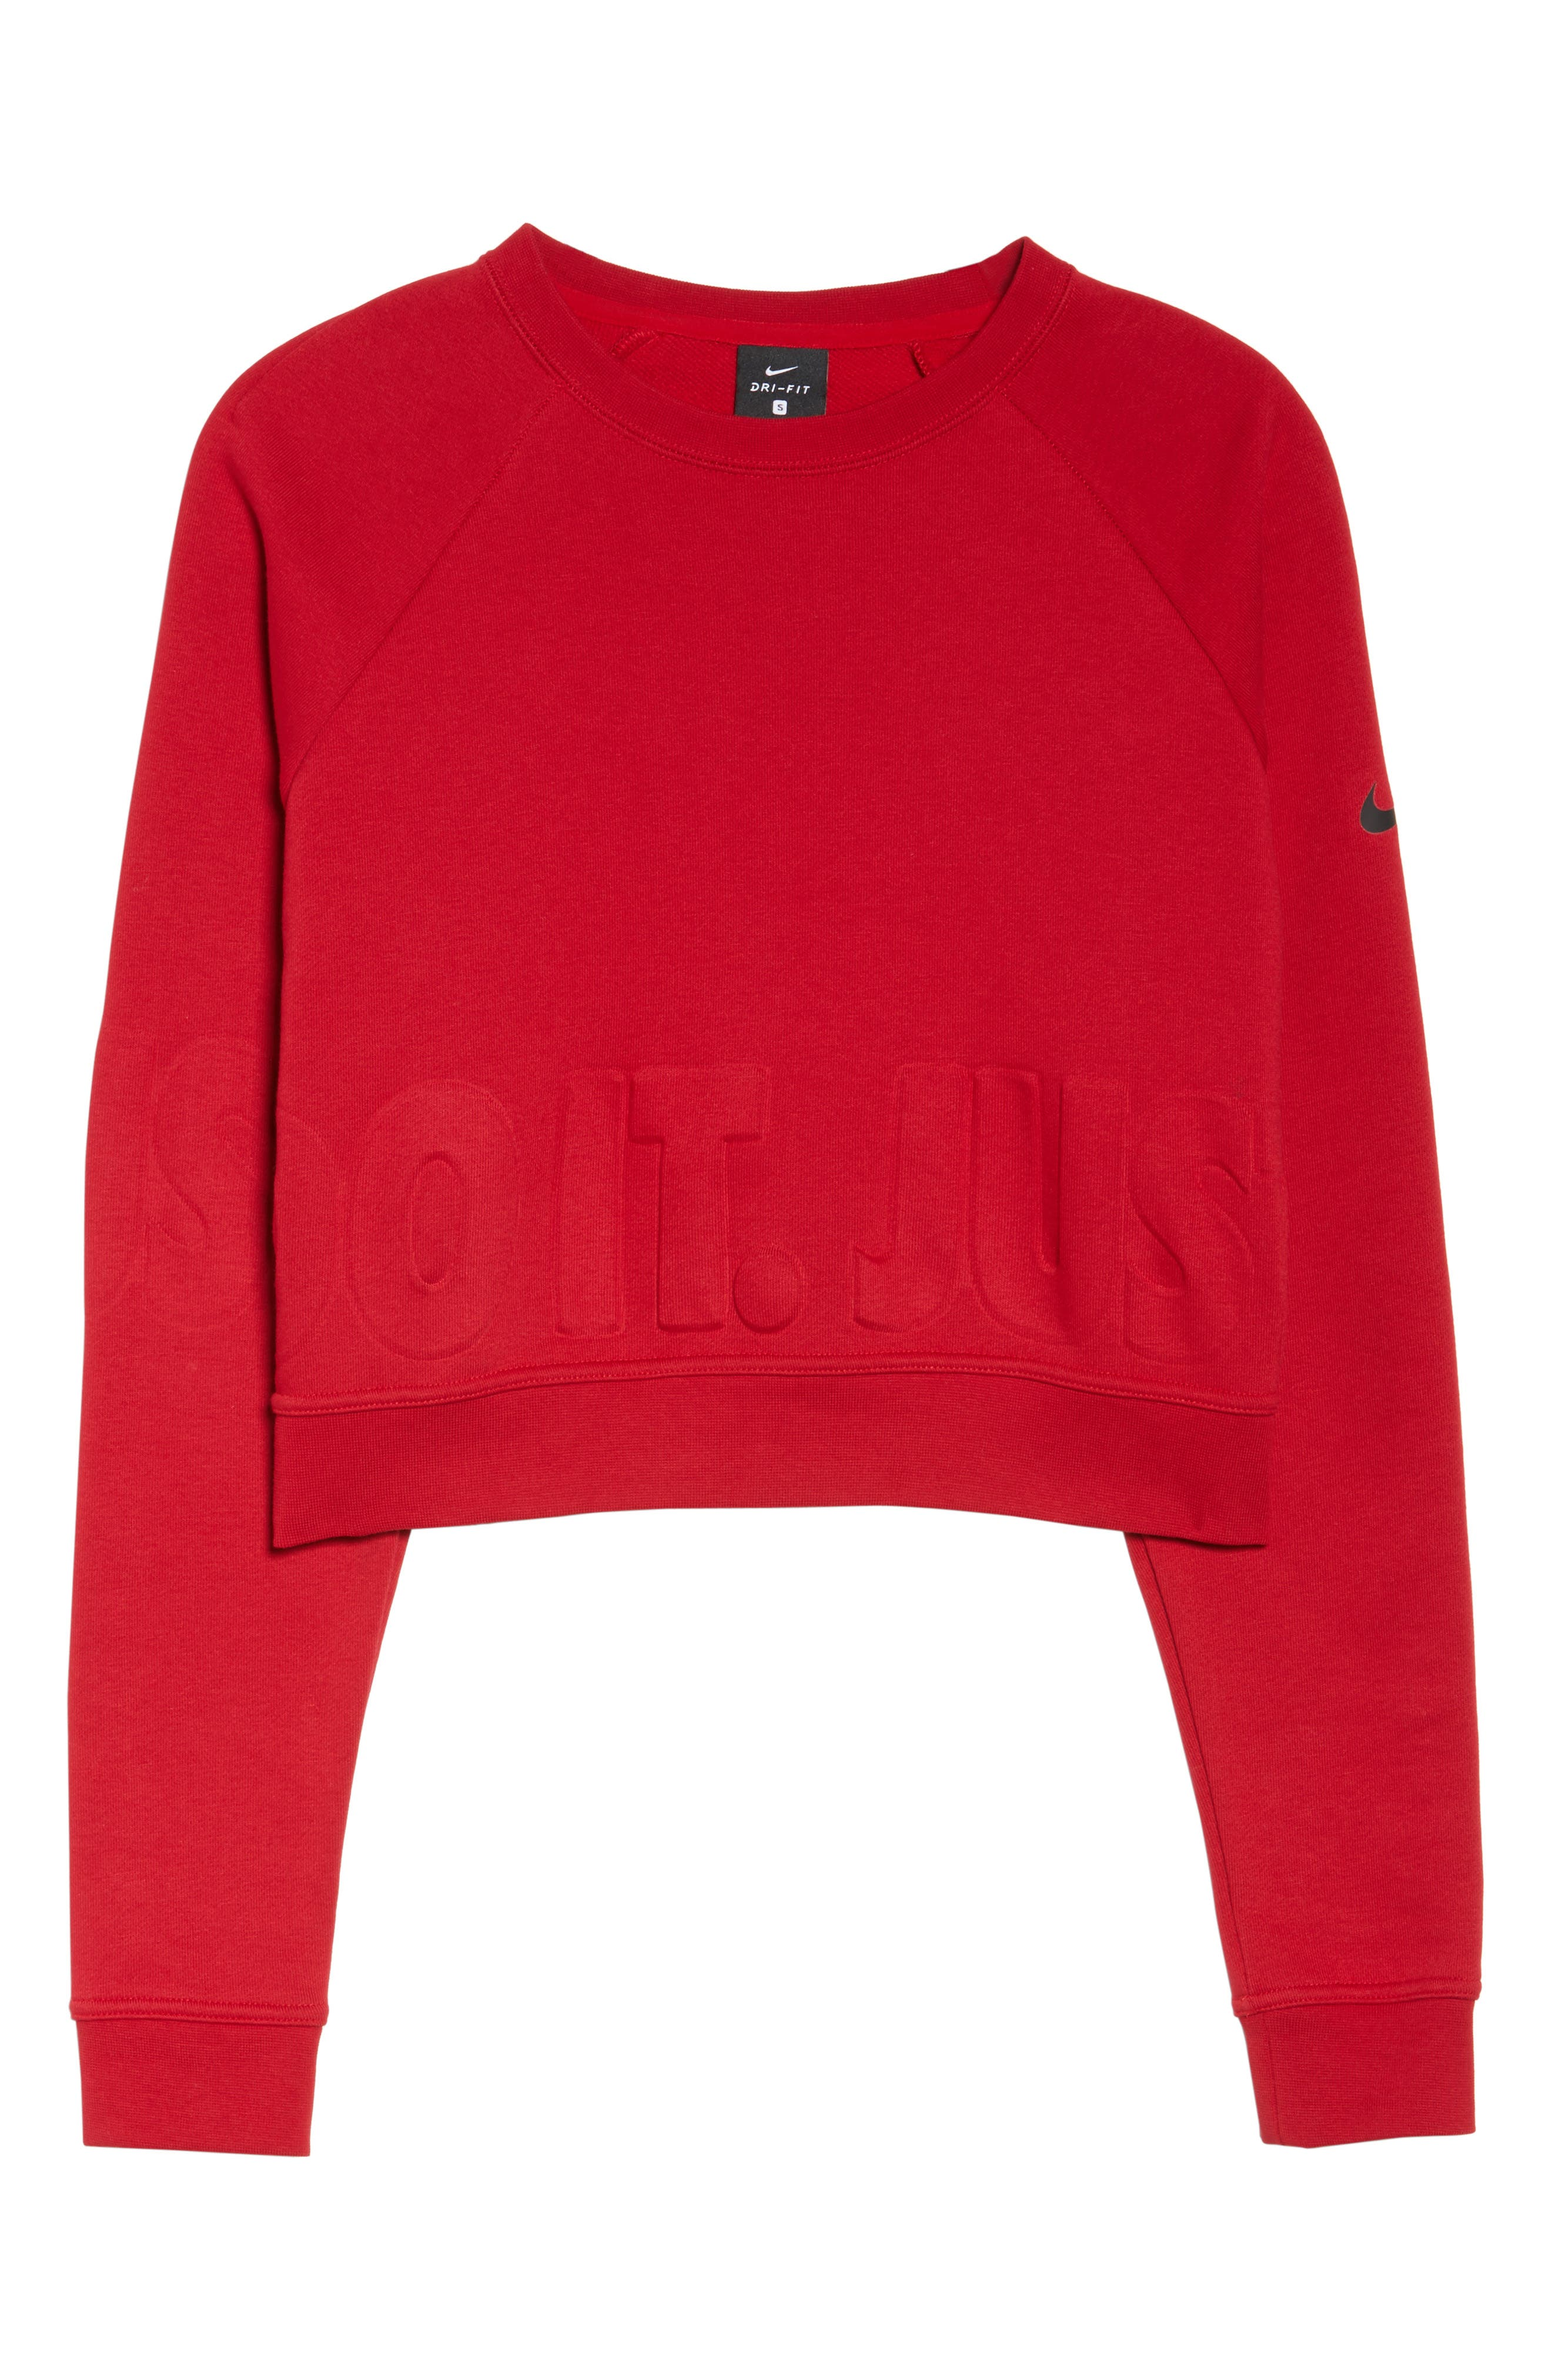 Long Sleeve Crop Training Top,                             Alternate thumbnail 7, color,                             Gym Red/ Black